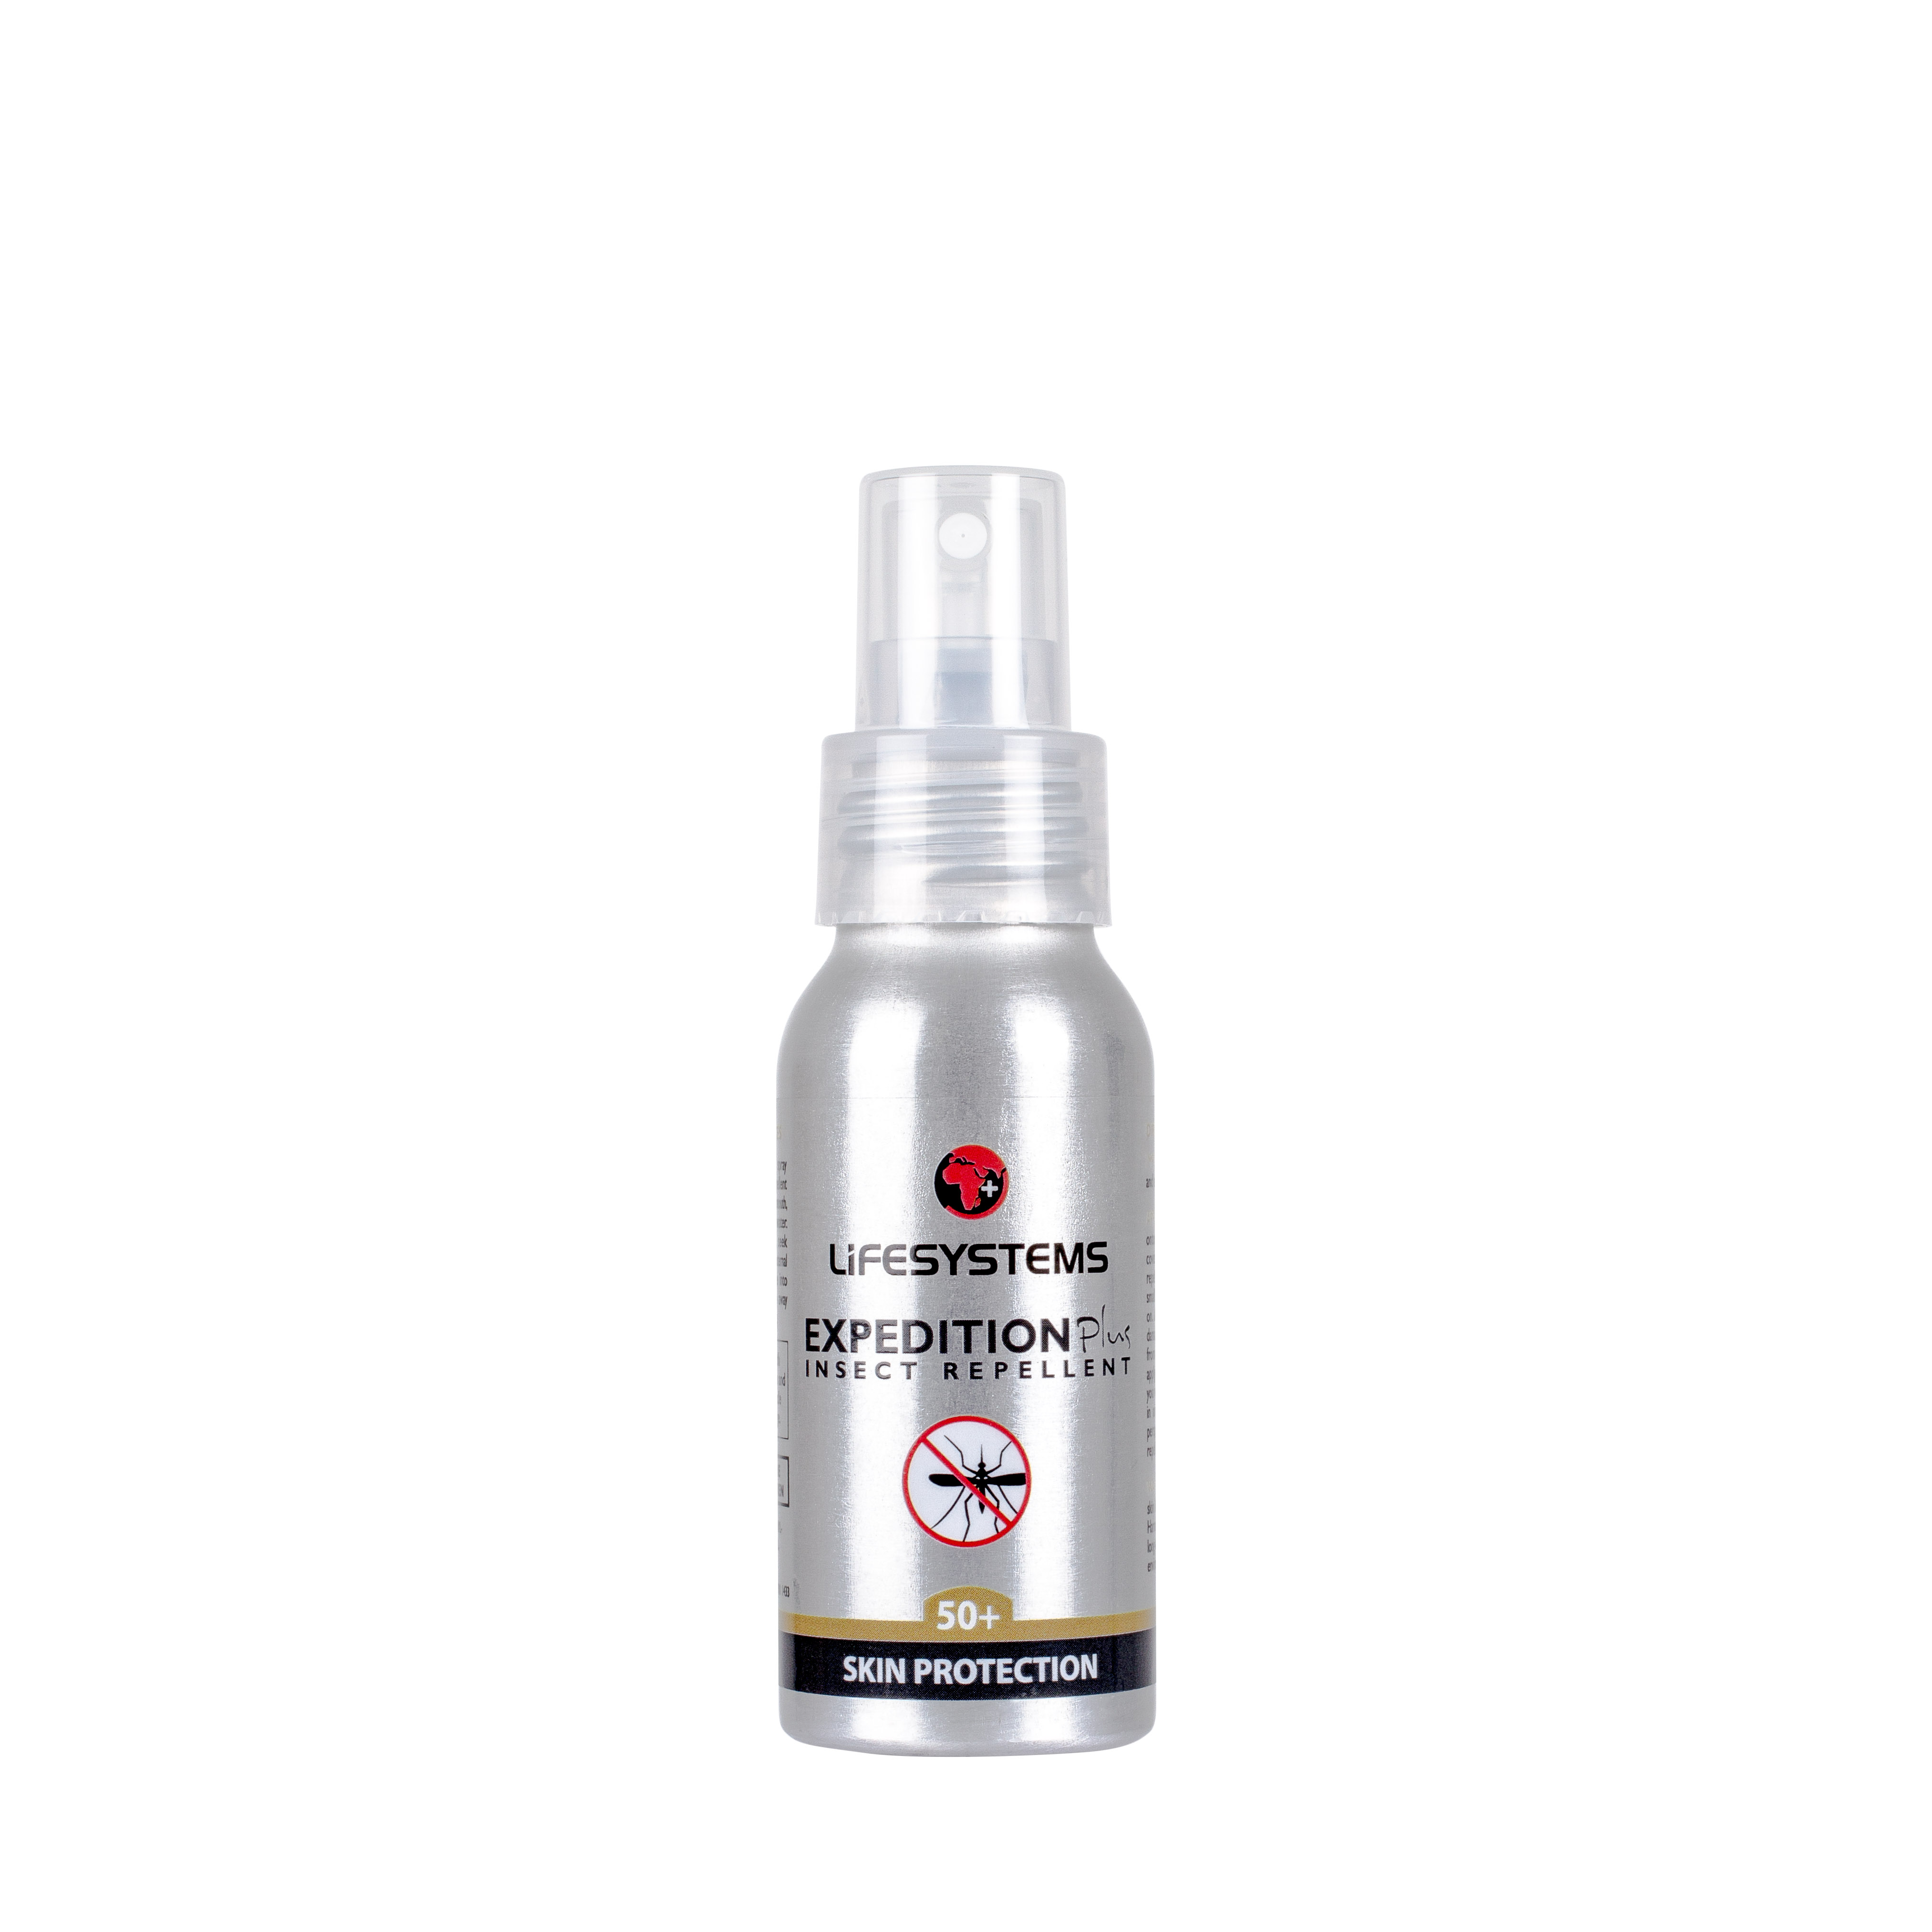 repelent Lifesystems Expedition Plus 50+ SPRAY 50 ml